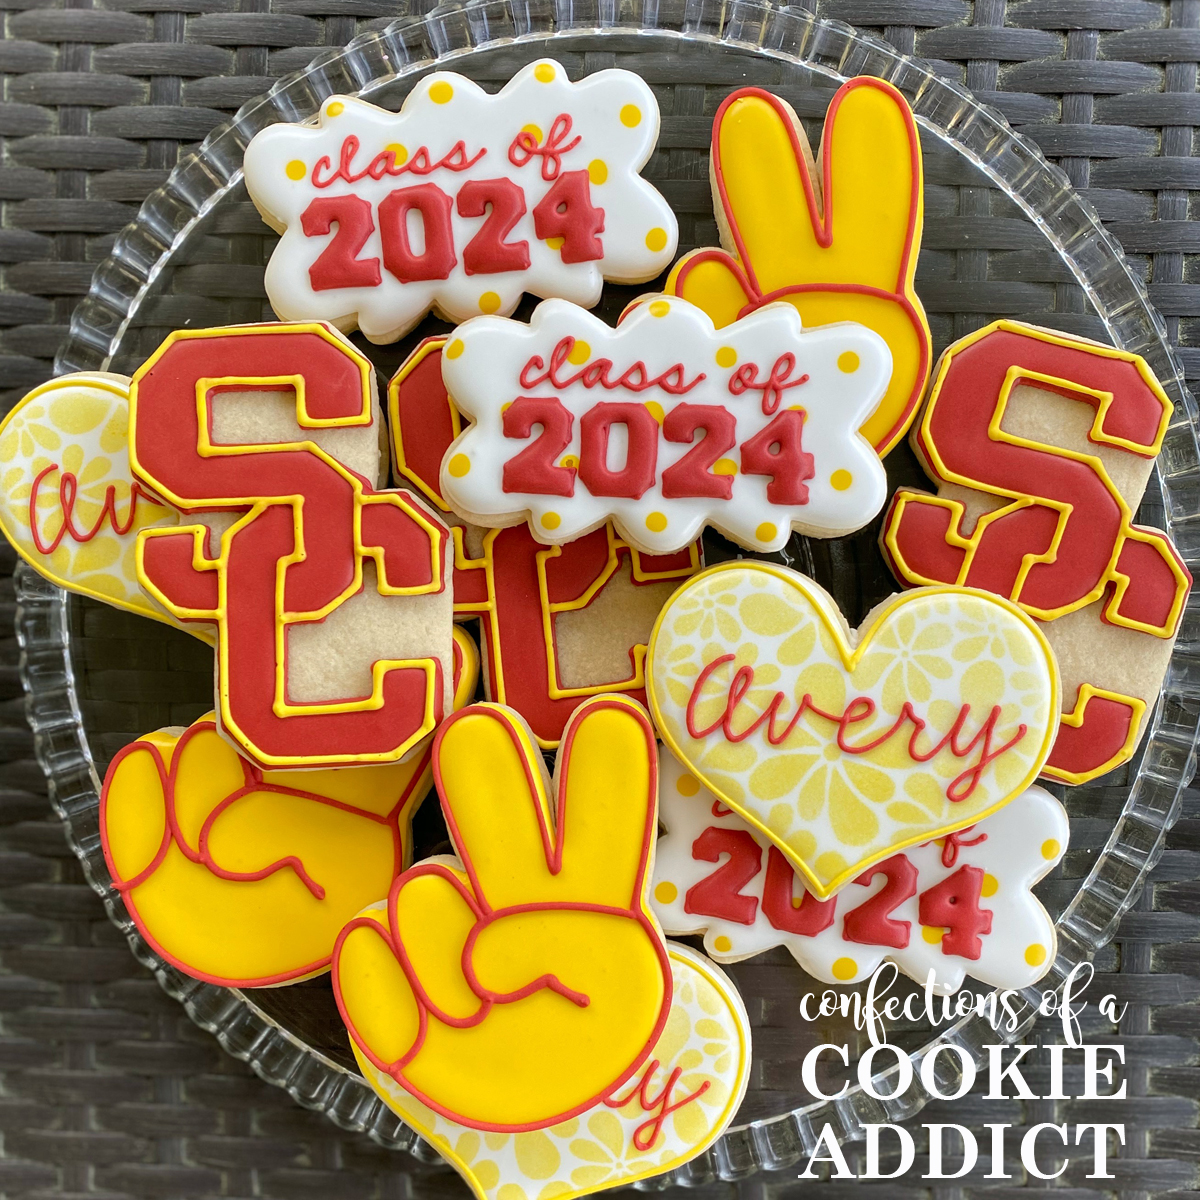 Southern Cal Cookies